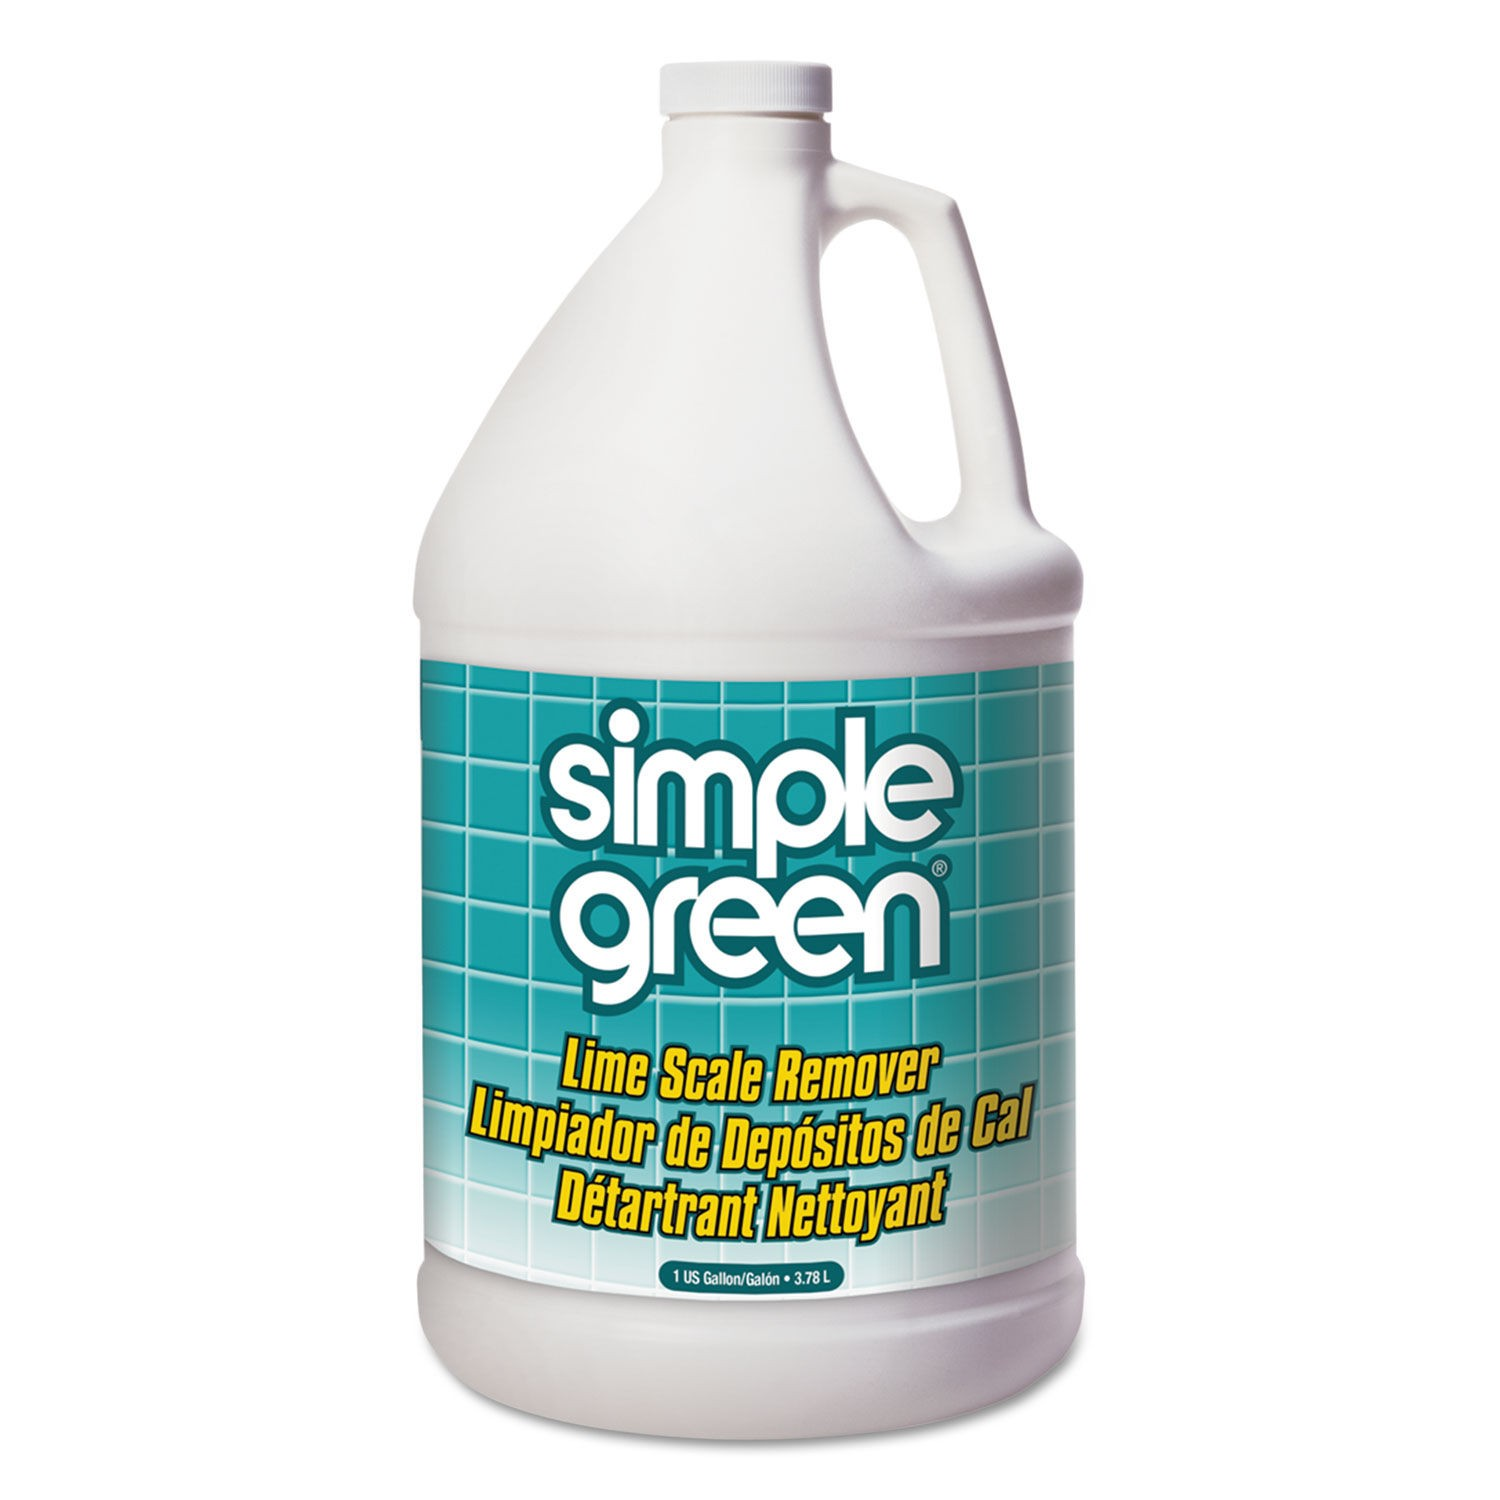 Simple Green Lime Scale Remover, Wintergreen, 1 Gallon Bottle